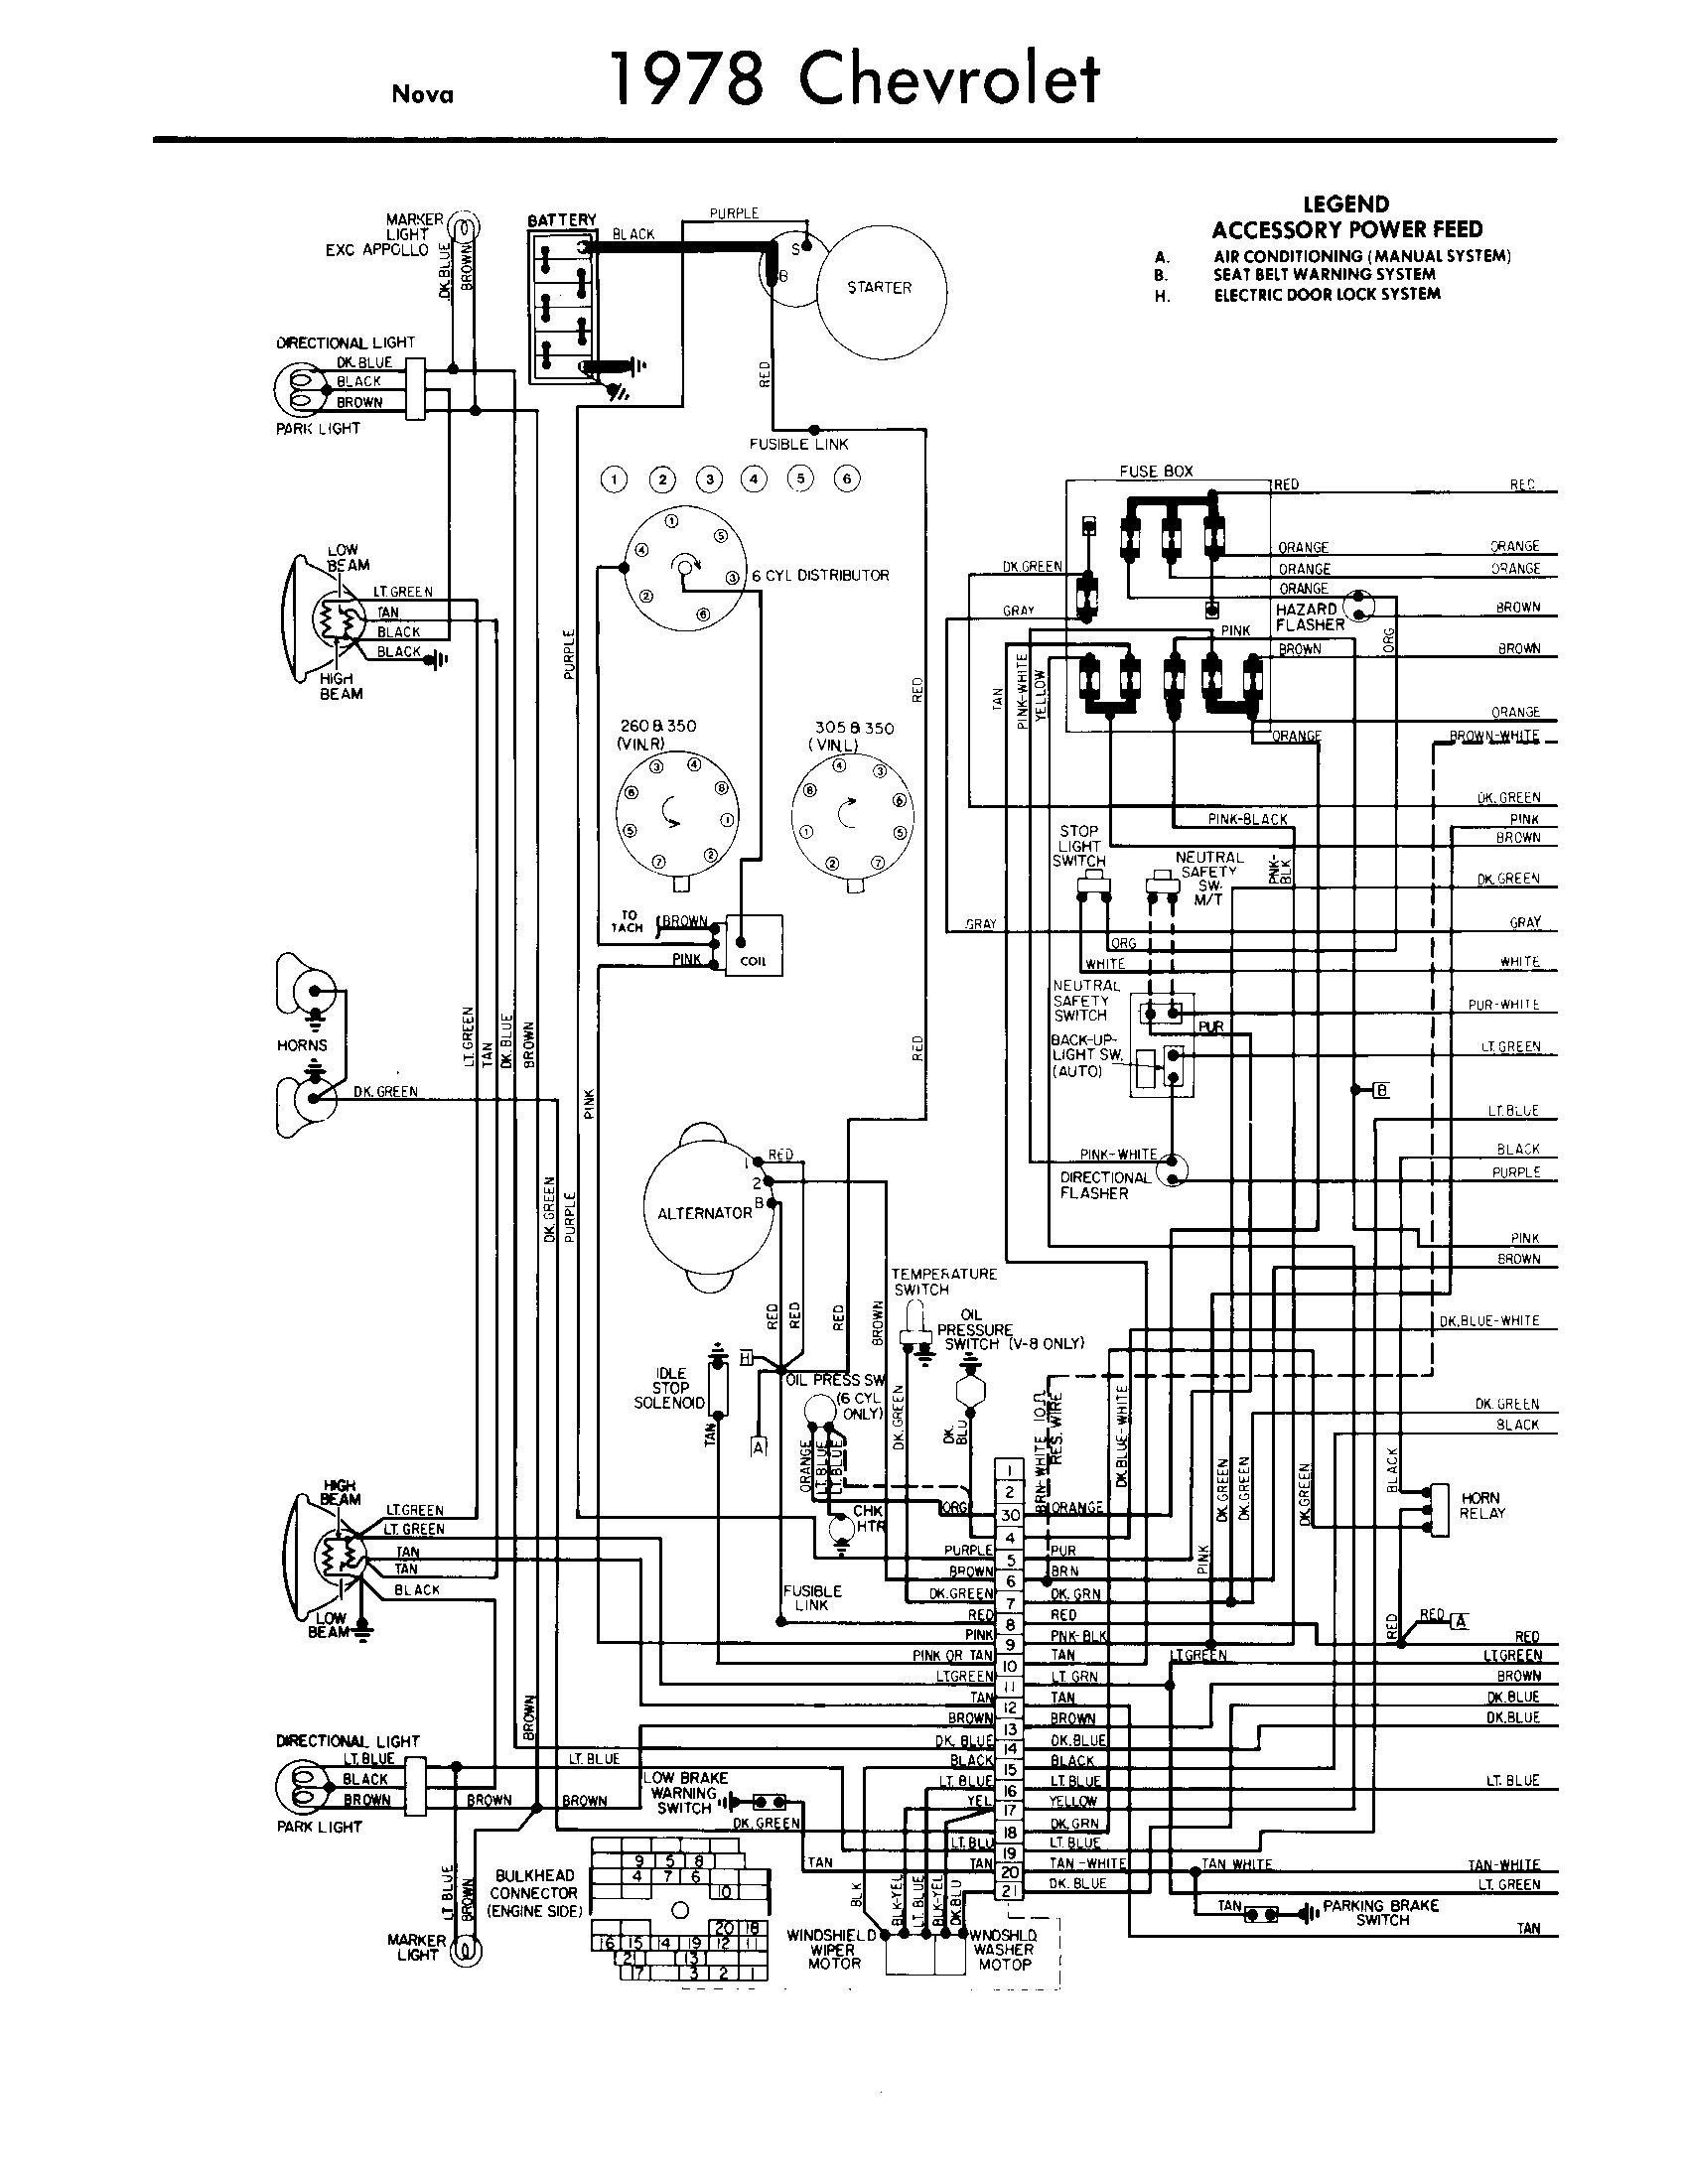 1982 Toyota Pickup Wiring Diagram Trusted 1981 1978 Fuel Pump Relay Data Dodge Schematics